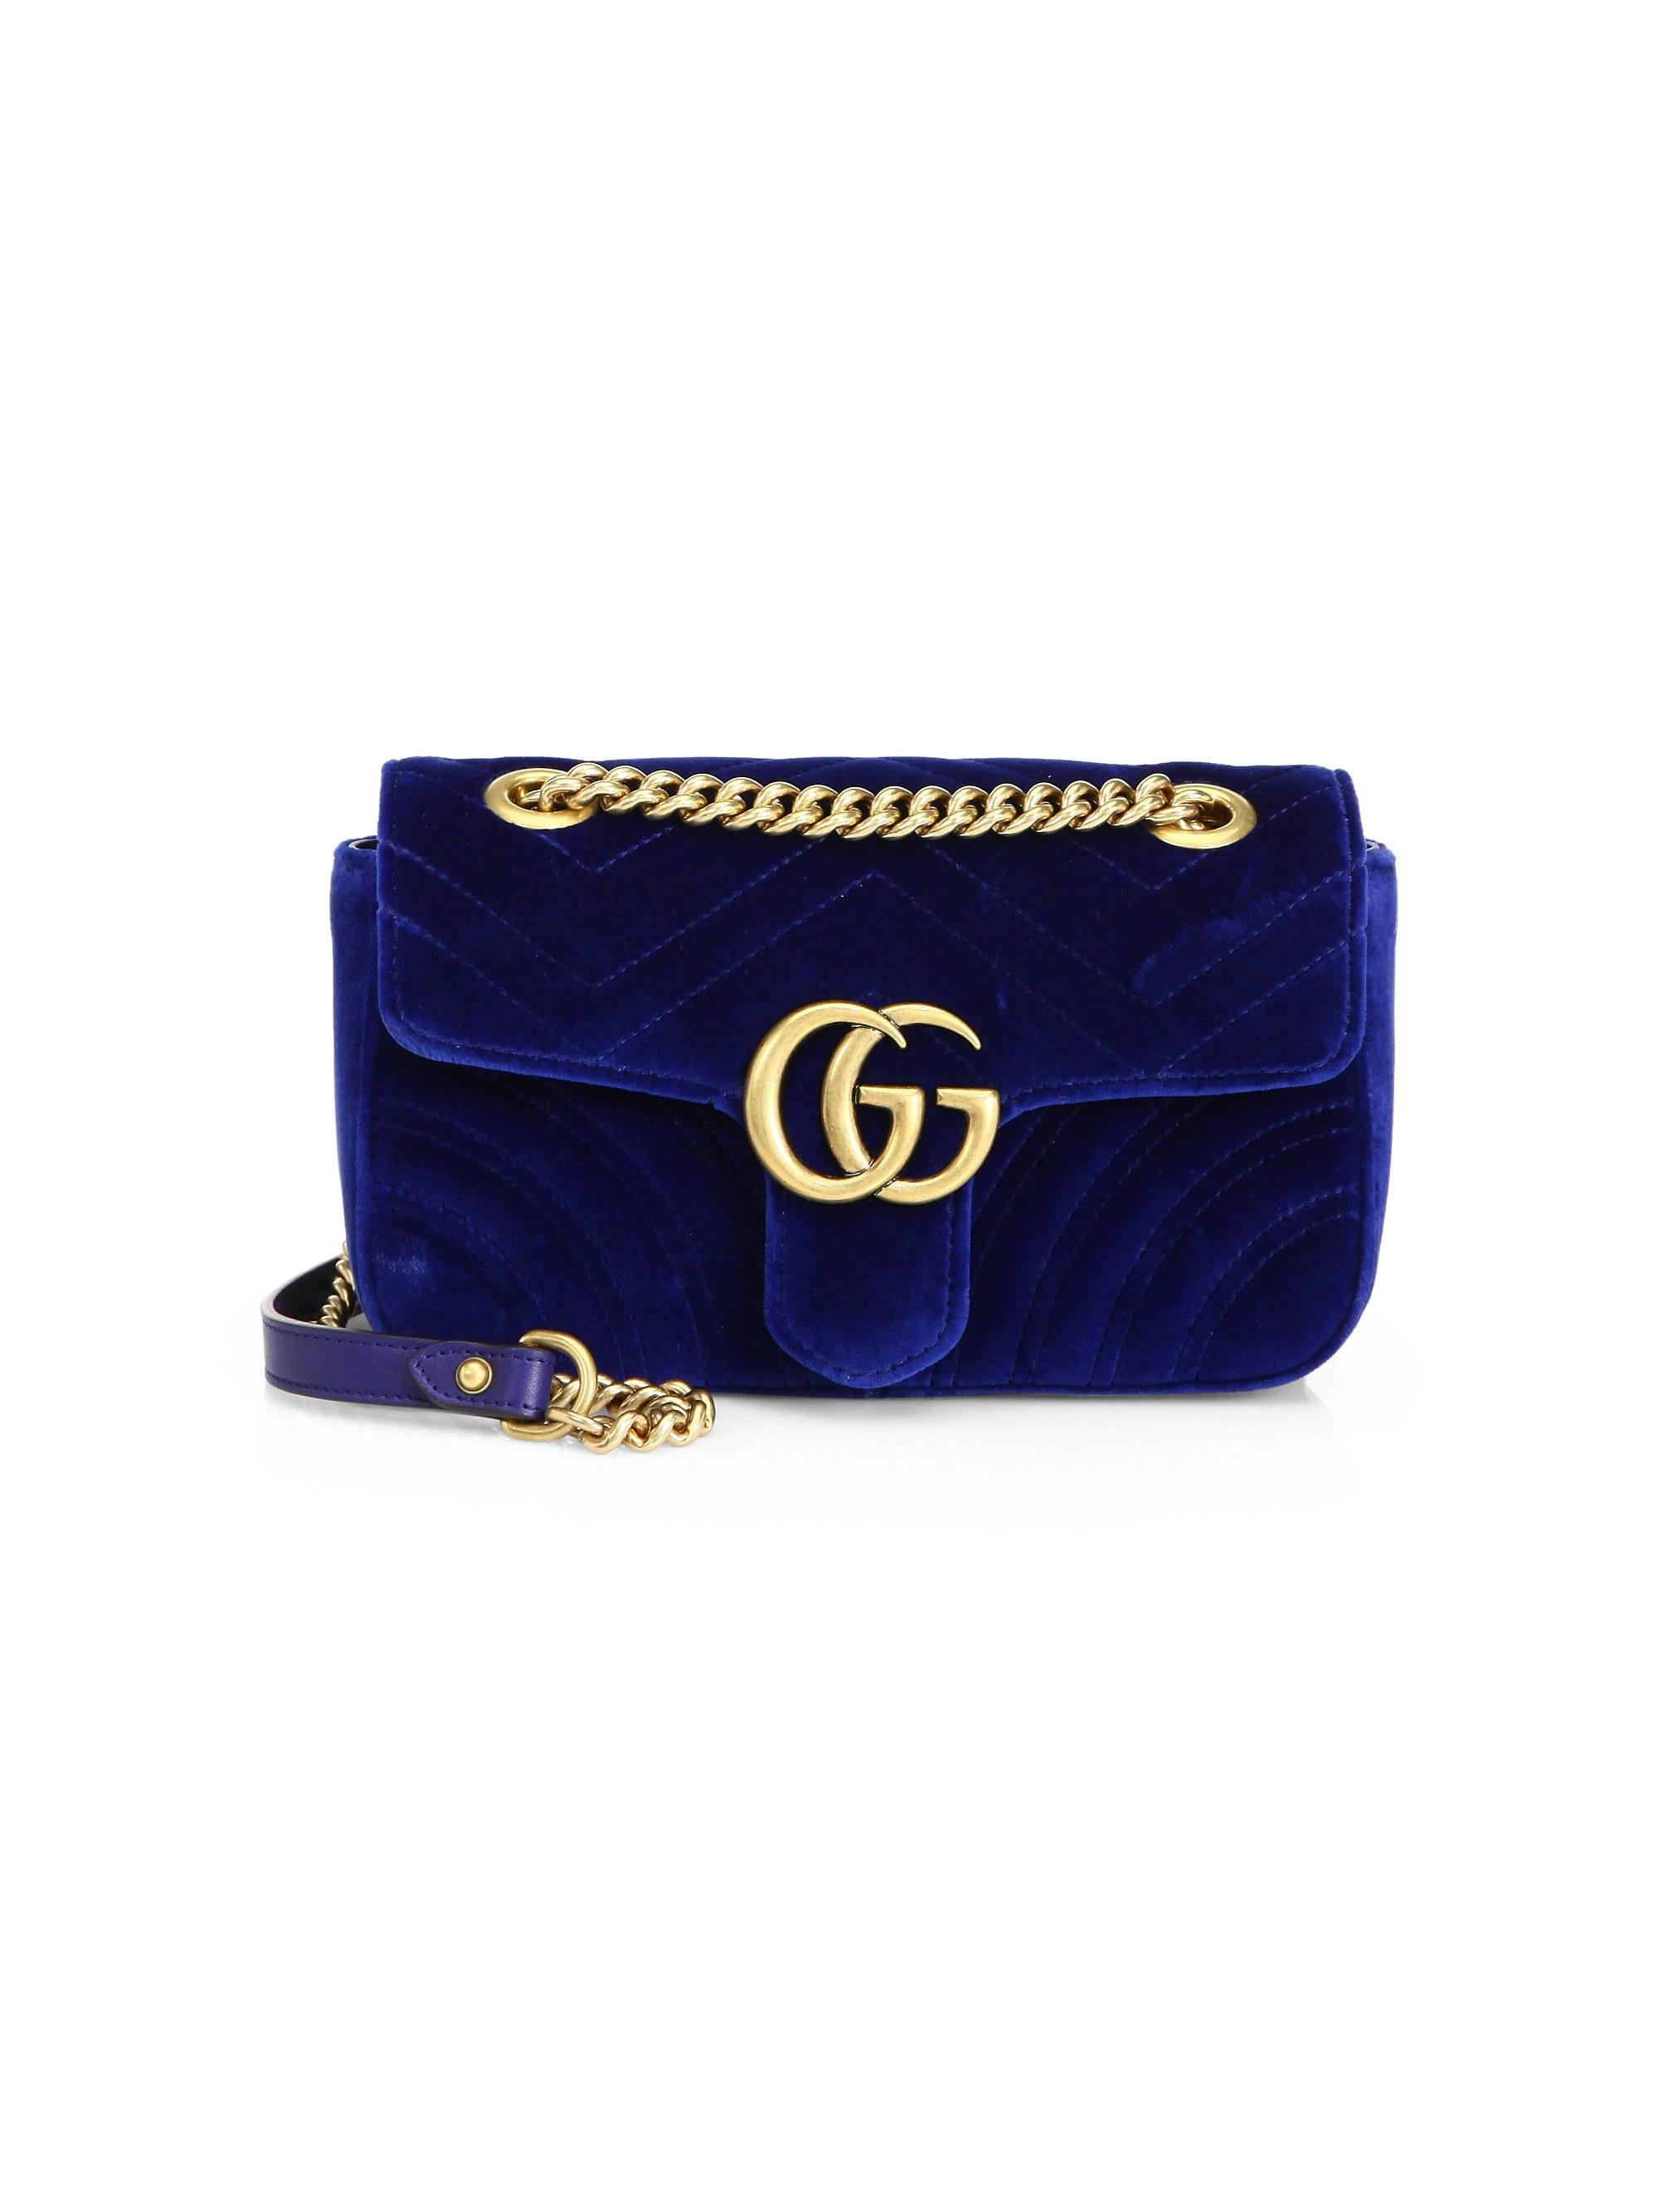 0e09ddfc3ee8 Gucci. Blue Women's Mini GG Marmont Velvet Bag - Black. $1,590 From Saks  Fifth Avenue